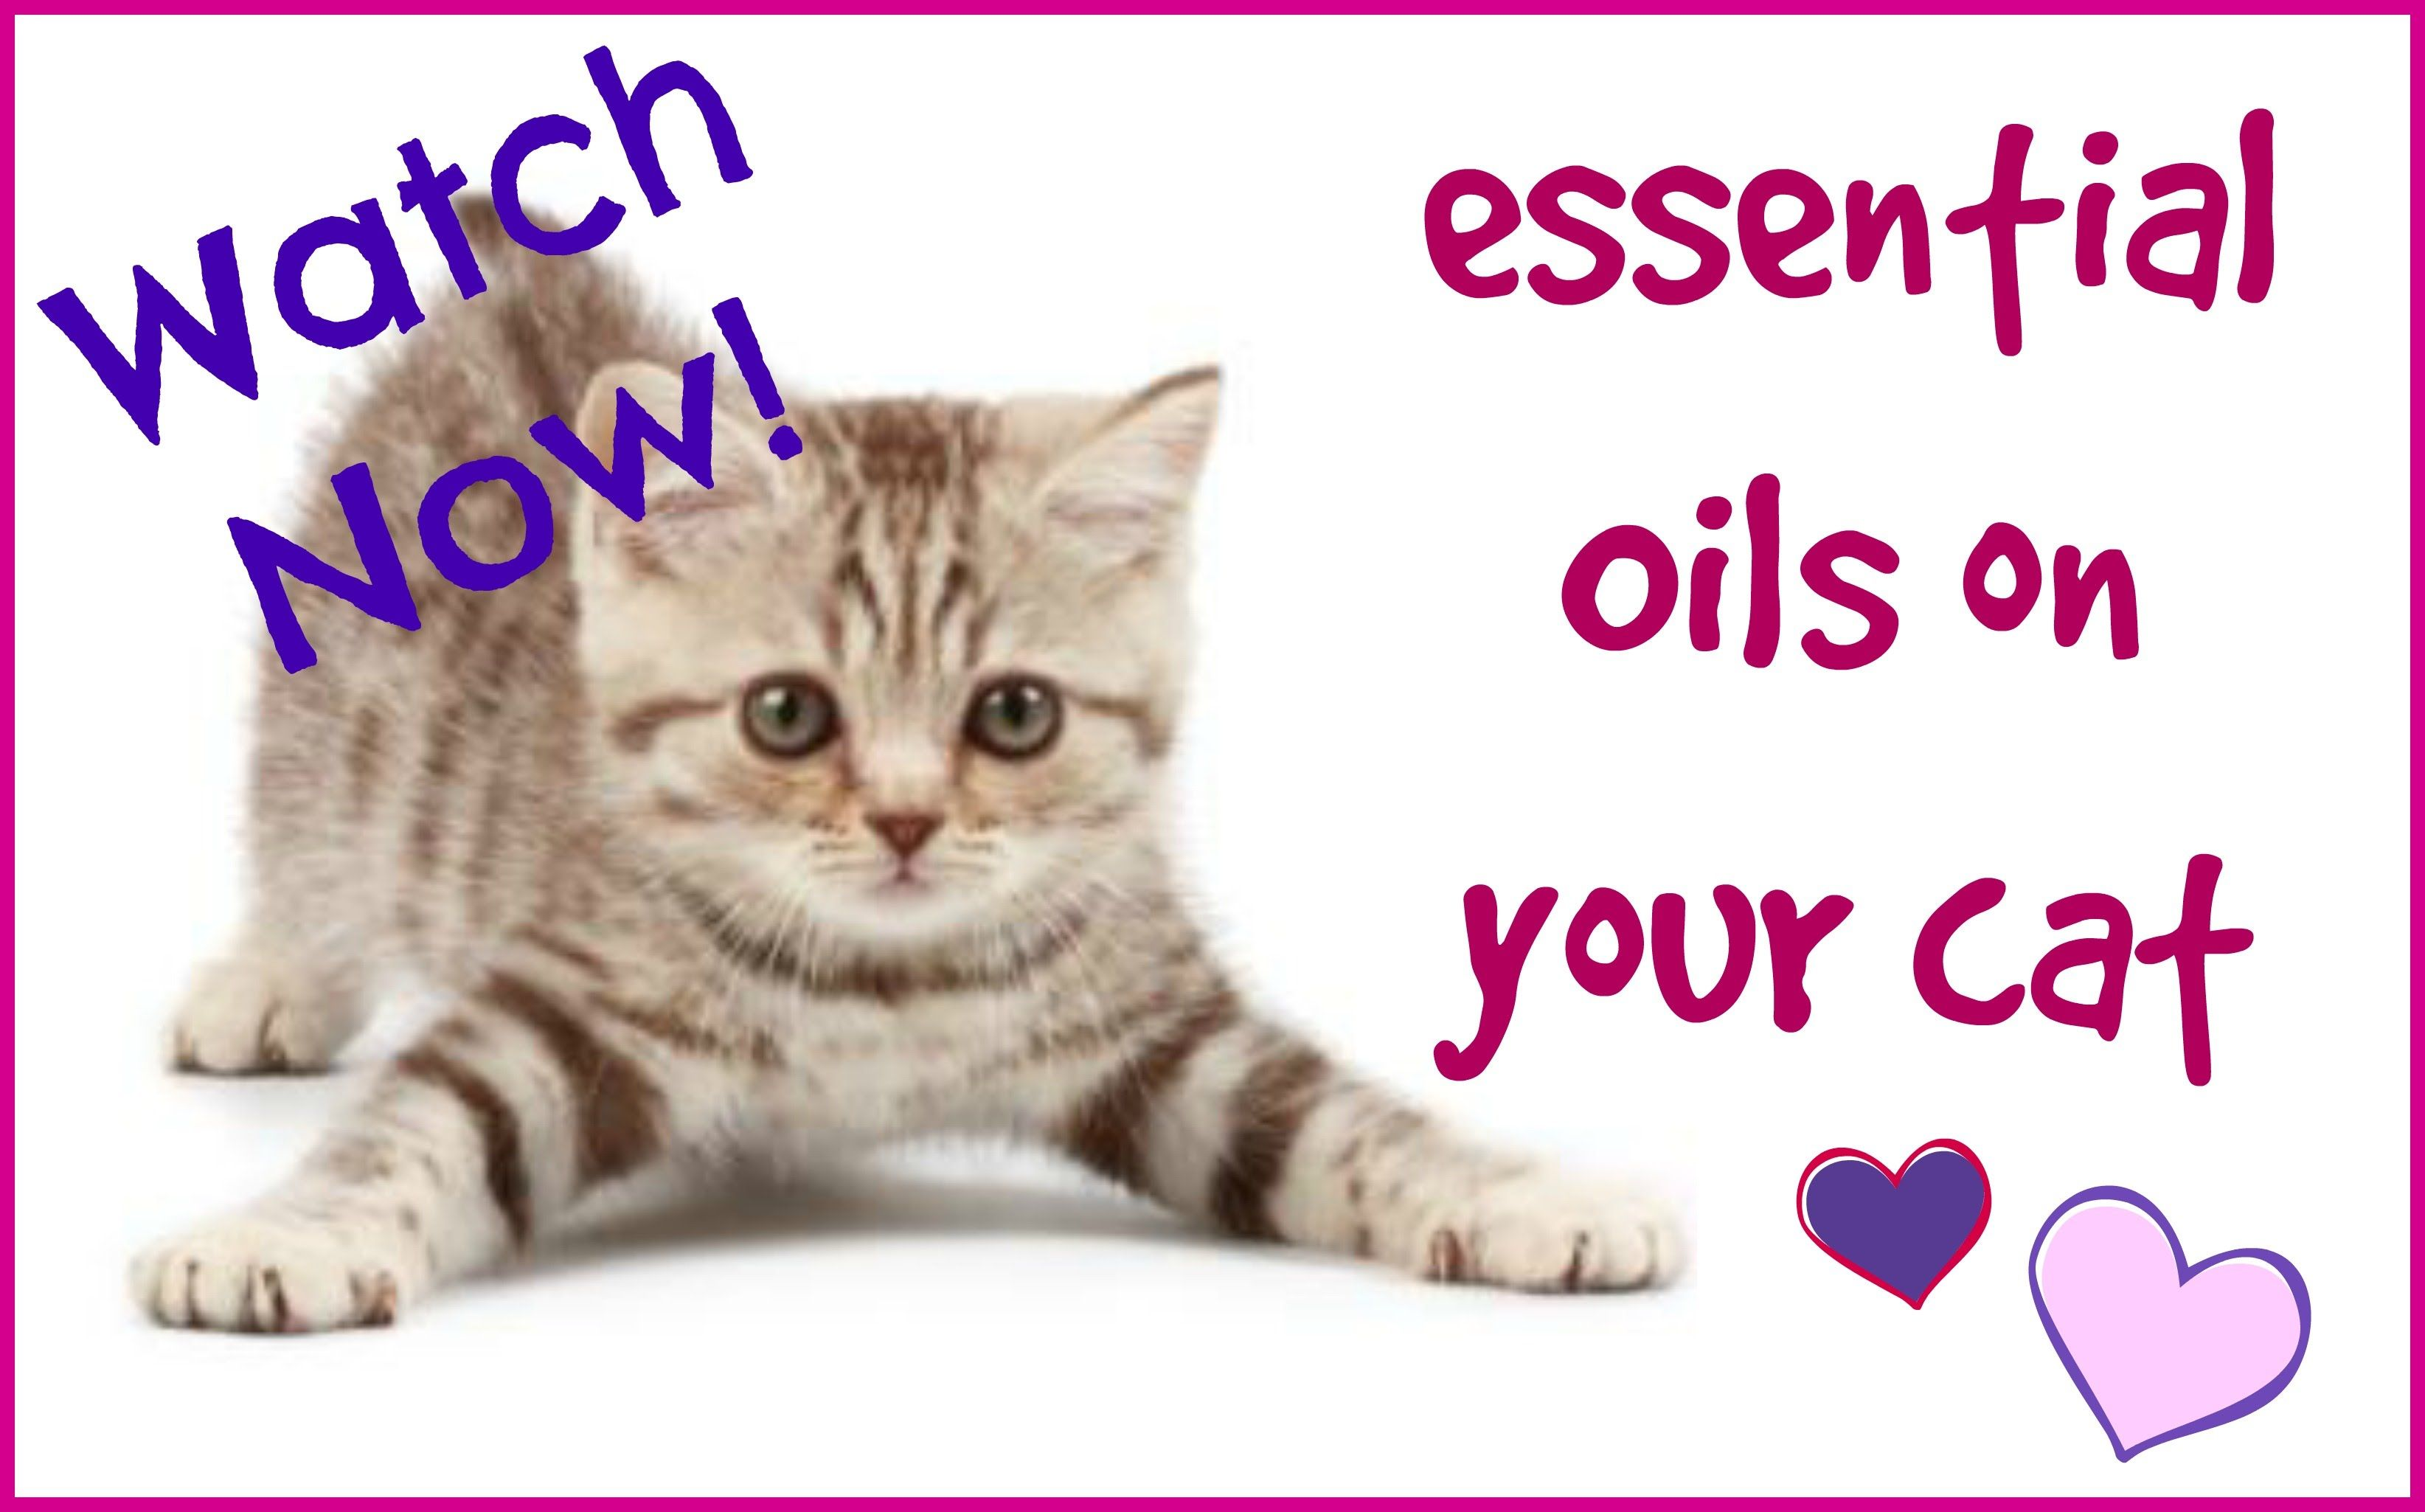 Essential Oils for Cats  Published on Apr 18, 2016